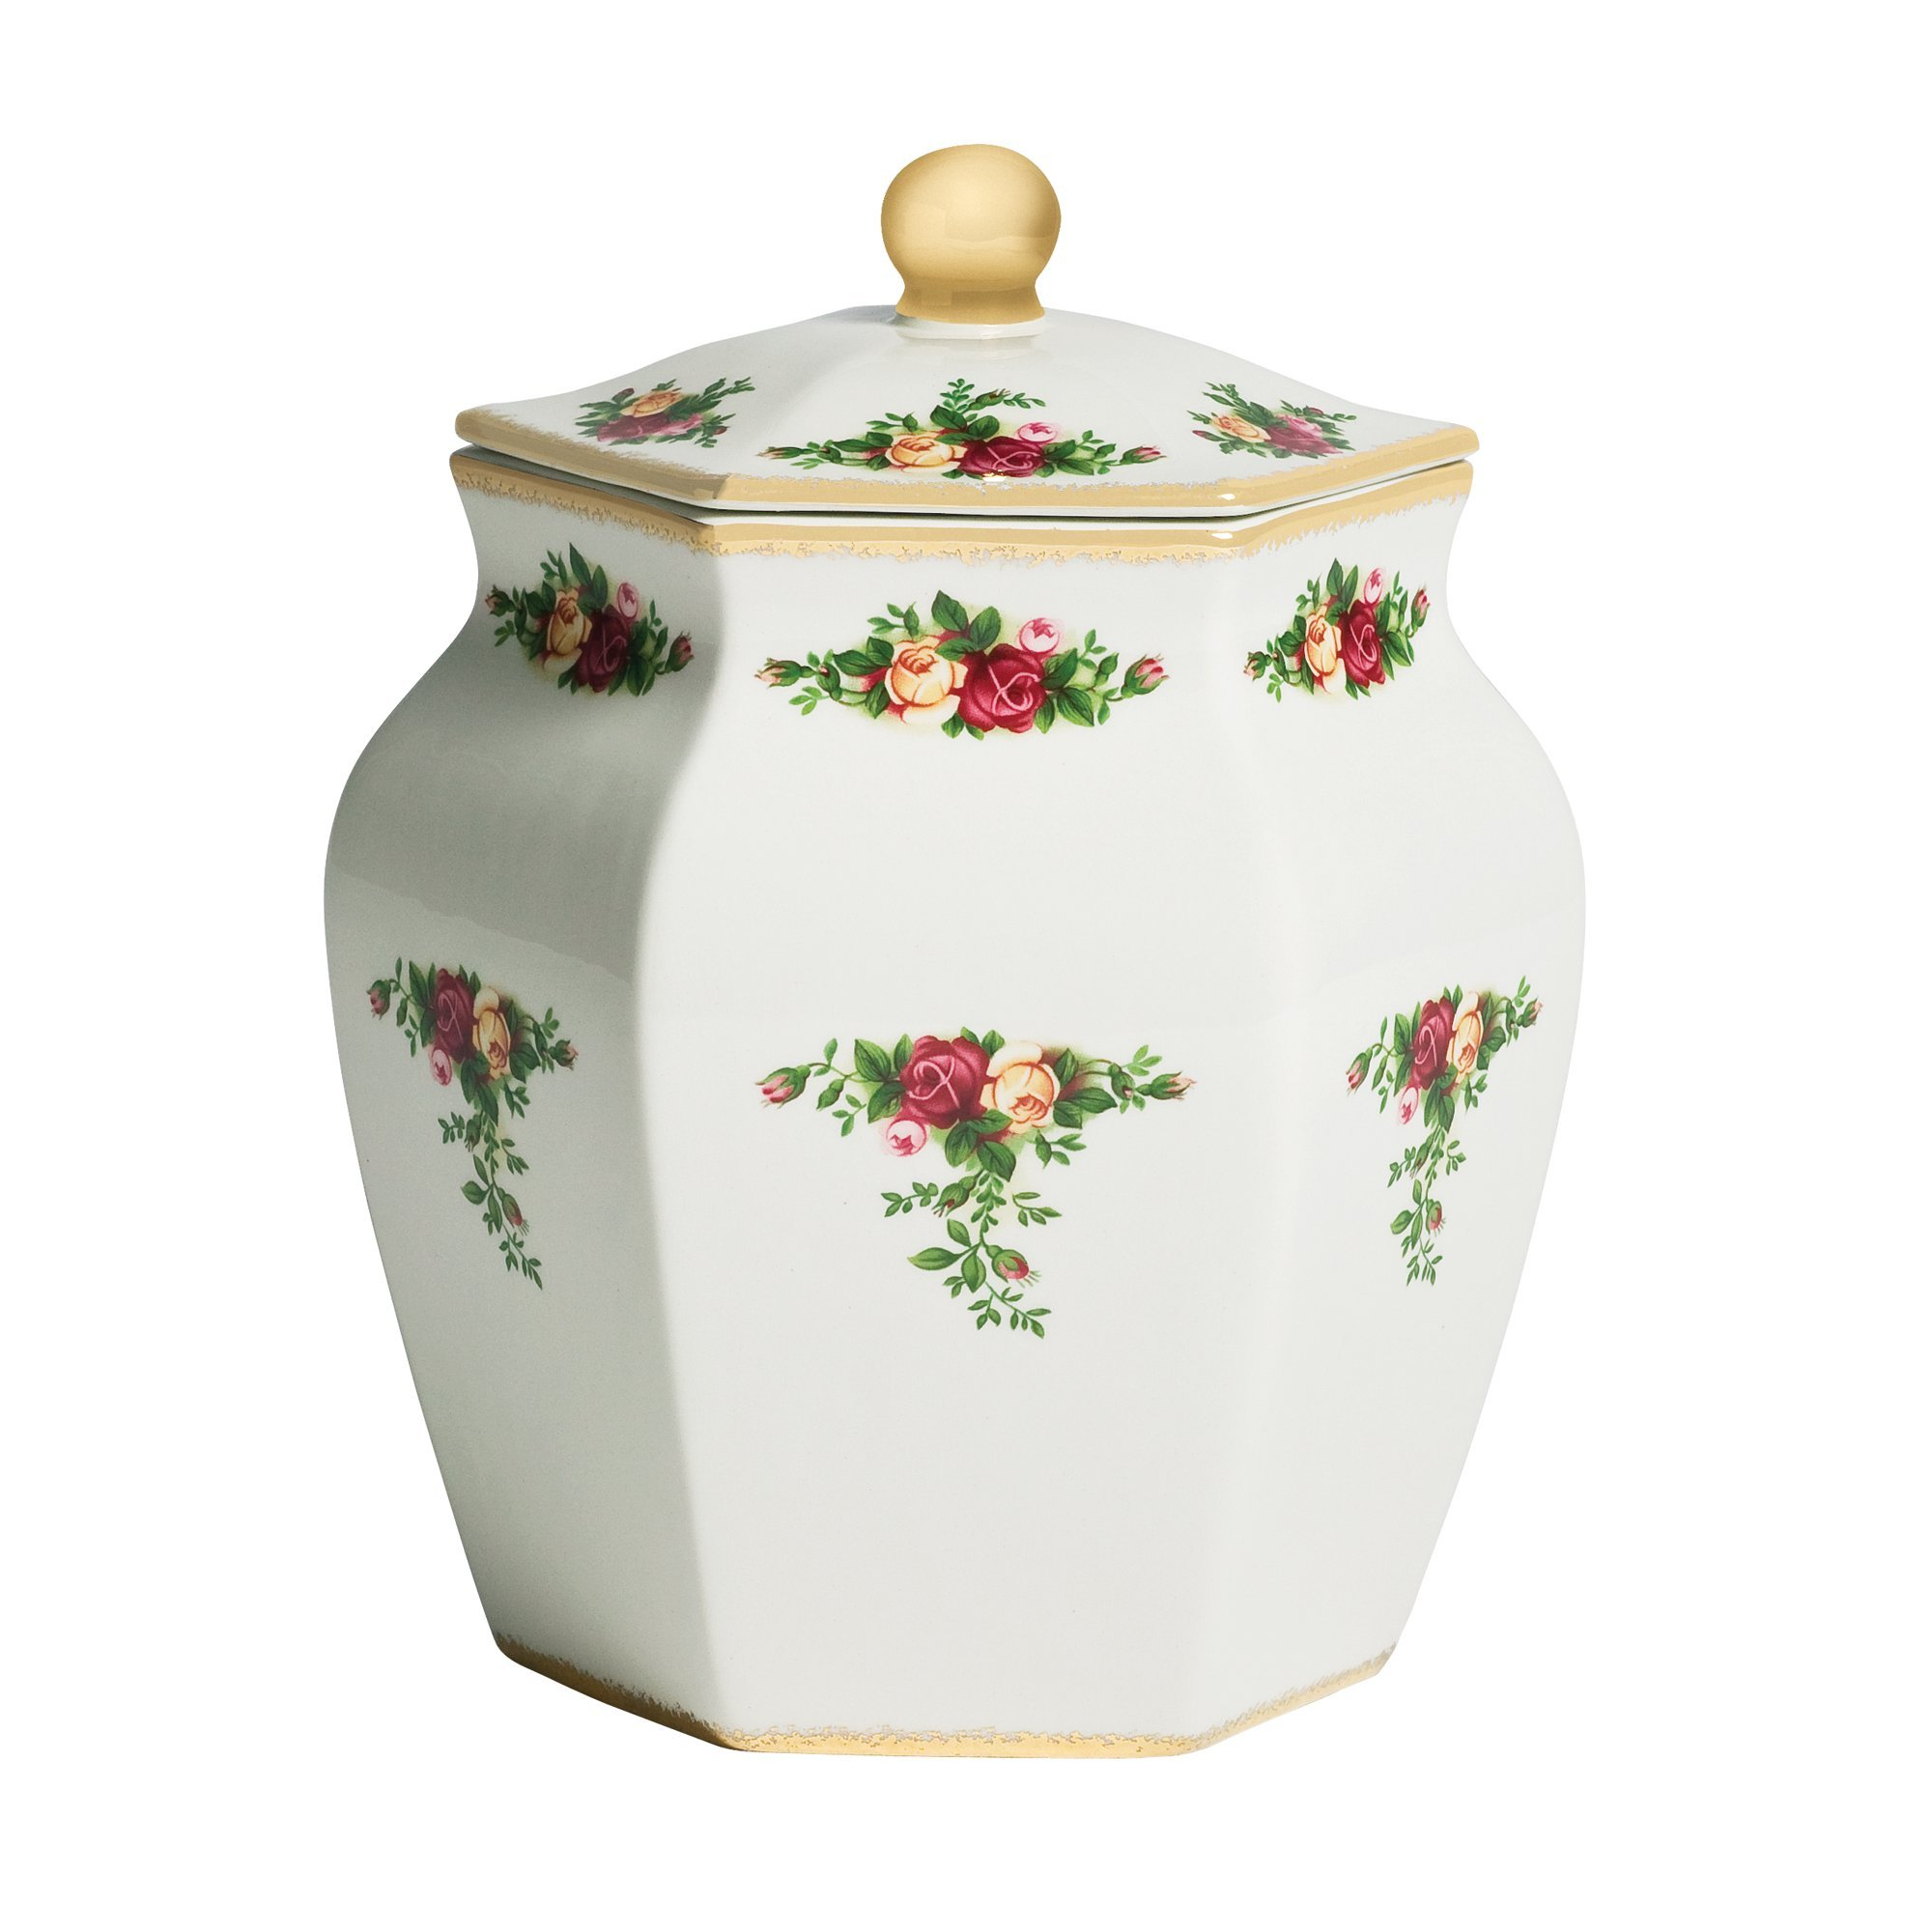 Royal Albert Old Country Roses Biscuit Jar, 7.5'', White